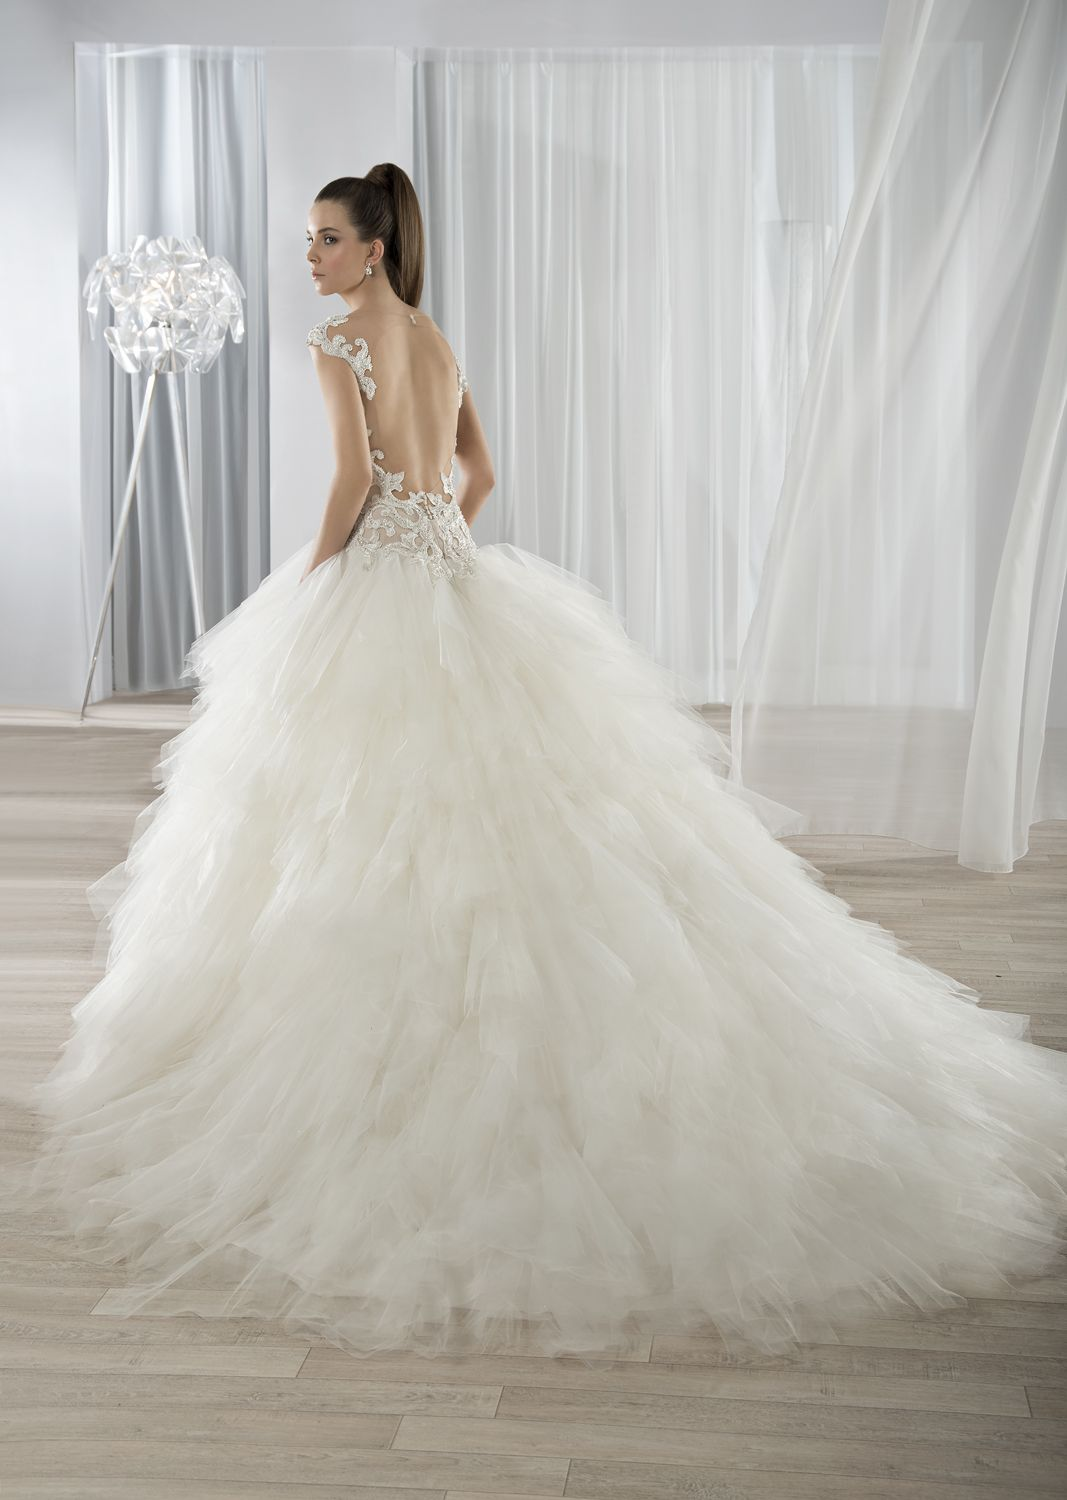 7bd5228a3fdc Dropped-waist Tulle ball gown with dramatic low back. Extravagant  multi-tier tulle skirt and Chapel train. #DemetriosBride Style 611.